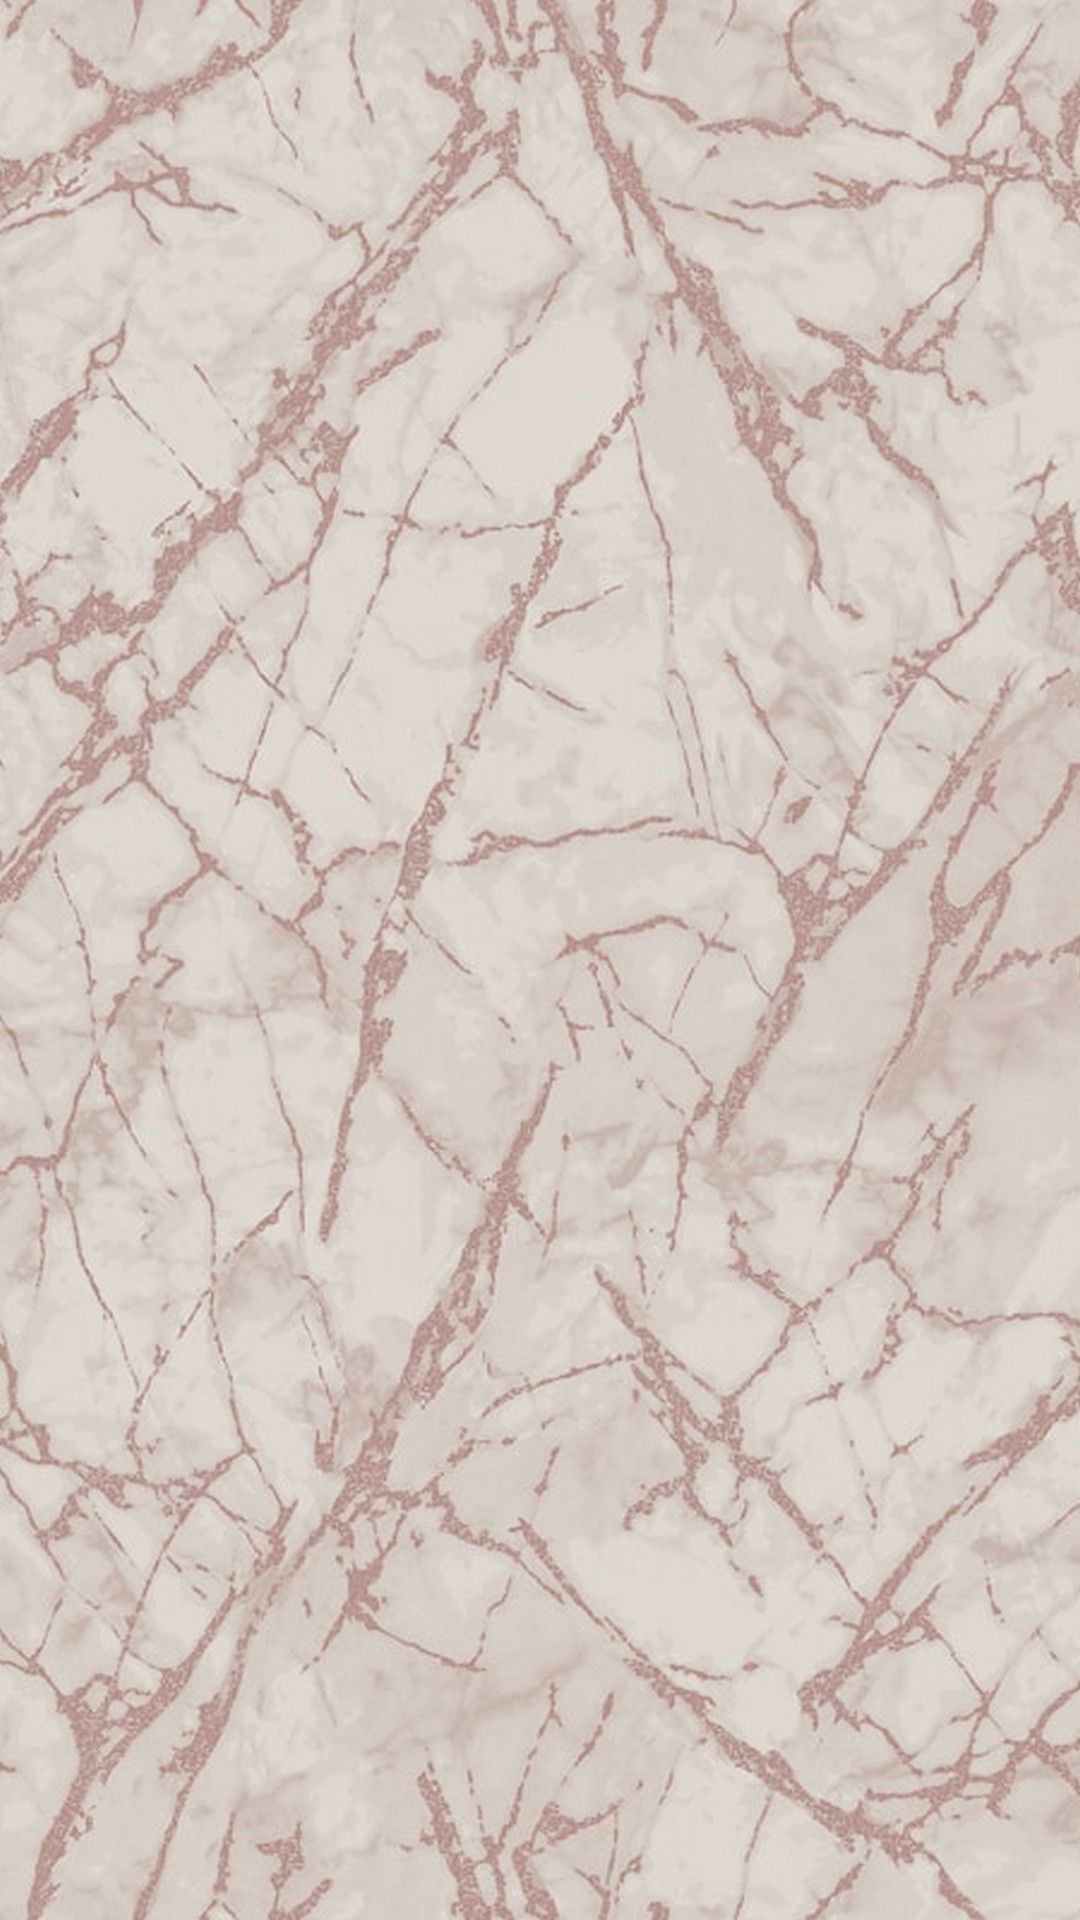 Marble Black White Gold Wallpaper Android Firefox Wallpaper Free Download Wallpapers Desktop In 2020 Rose Gold Marble Wallpaper Gold Marble Wallpaper Grey Wallpaper Iphone